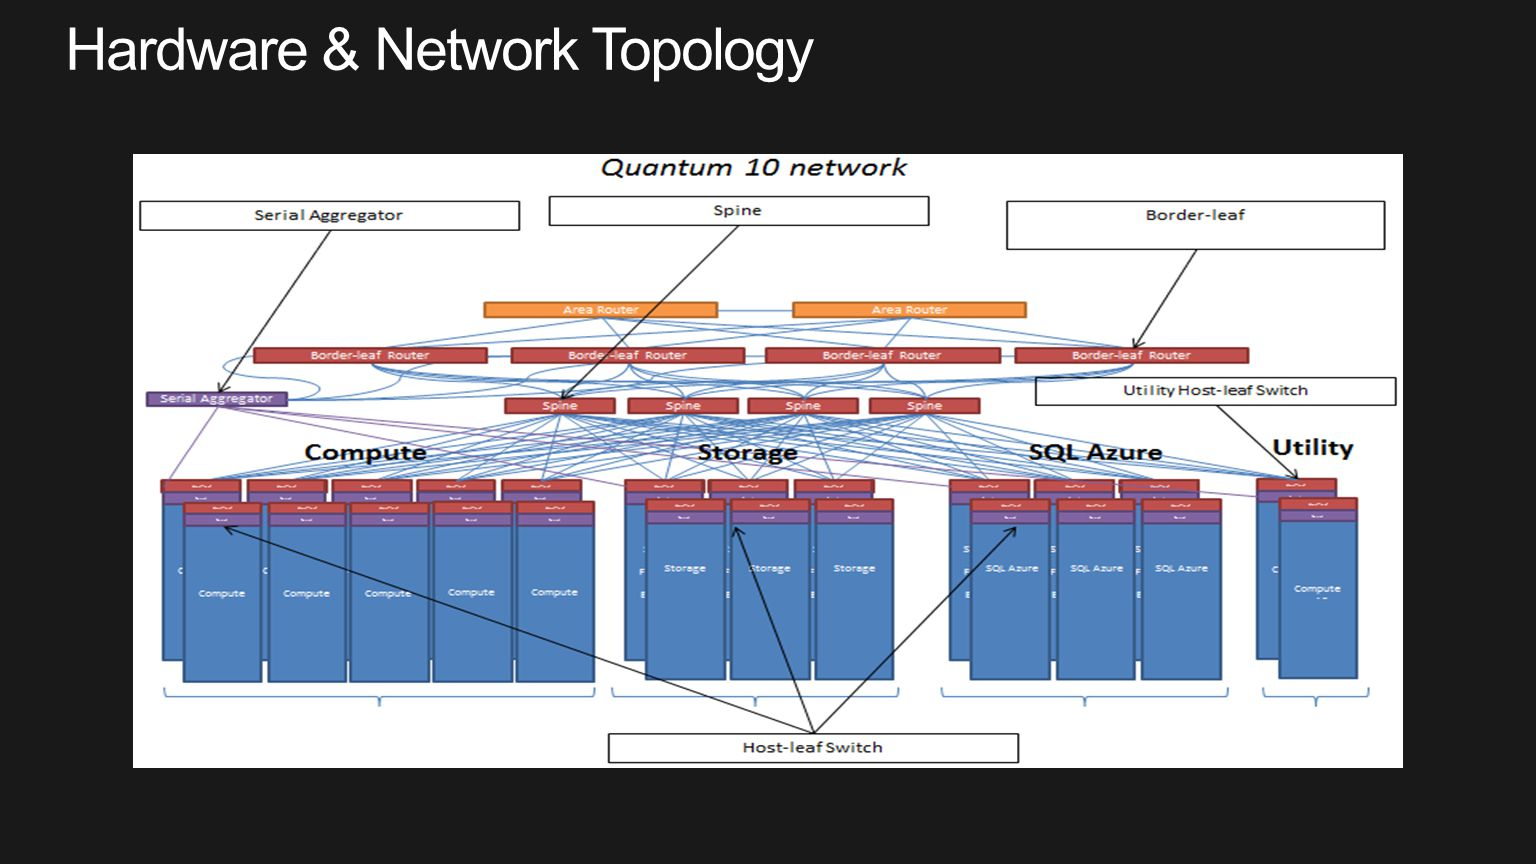 Hardware & Network Topology